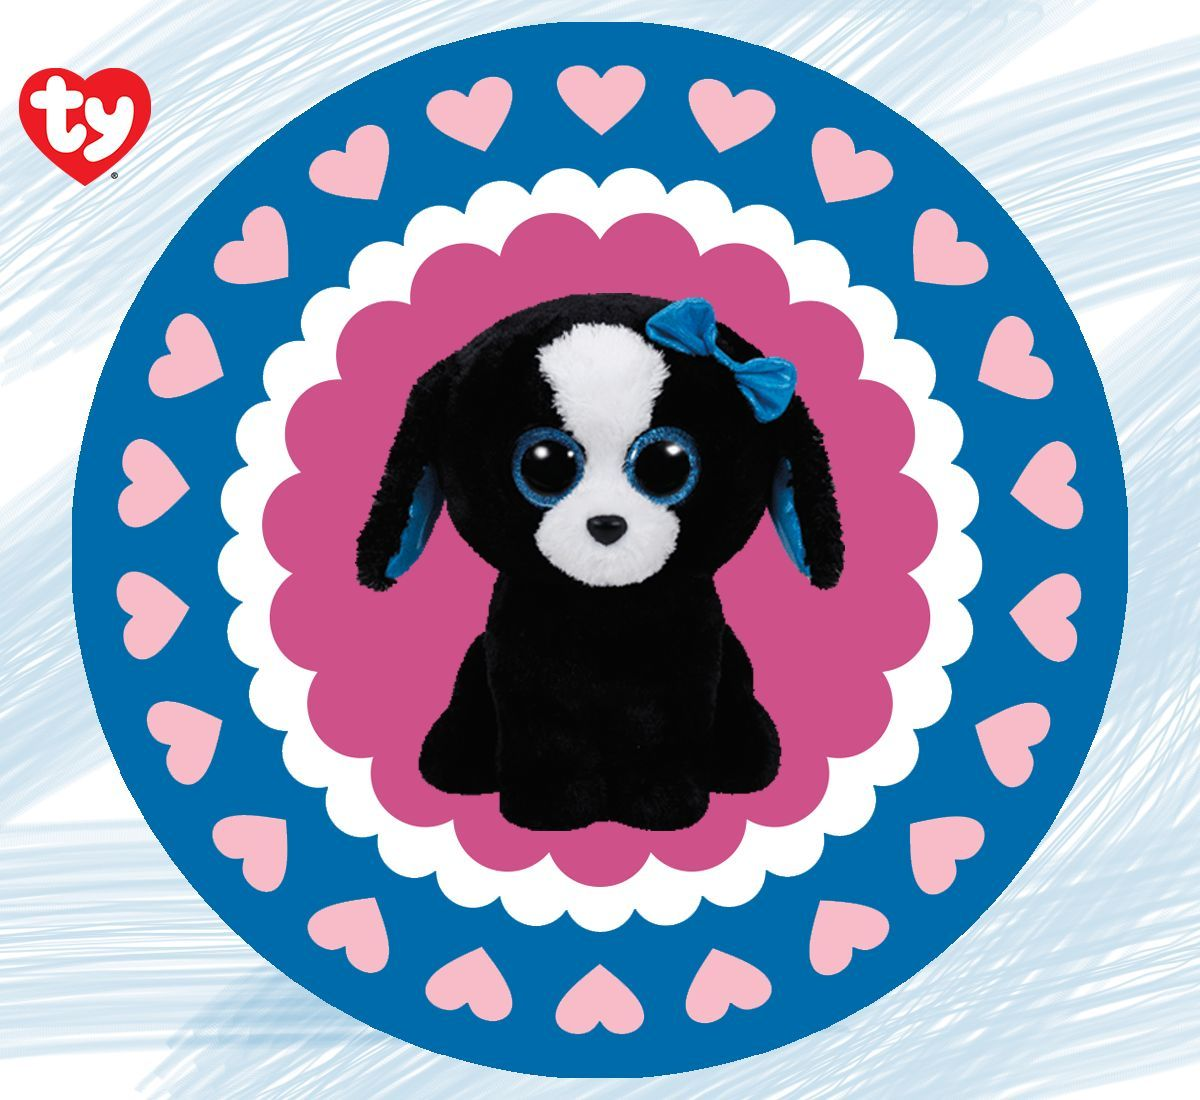 Beanie boos dog tracy clipart picture black and white stock Pin by Ty Inc. on Beanie Boos | Kids rugs, Beanie boos, Home Decor picture black and white stock